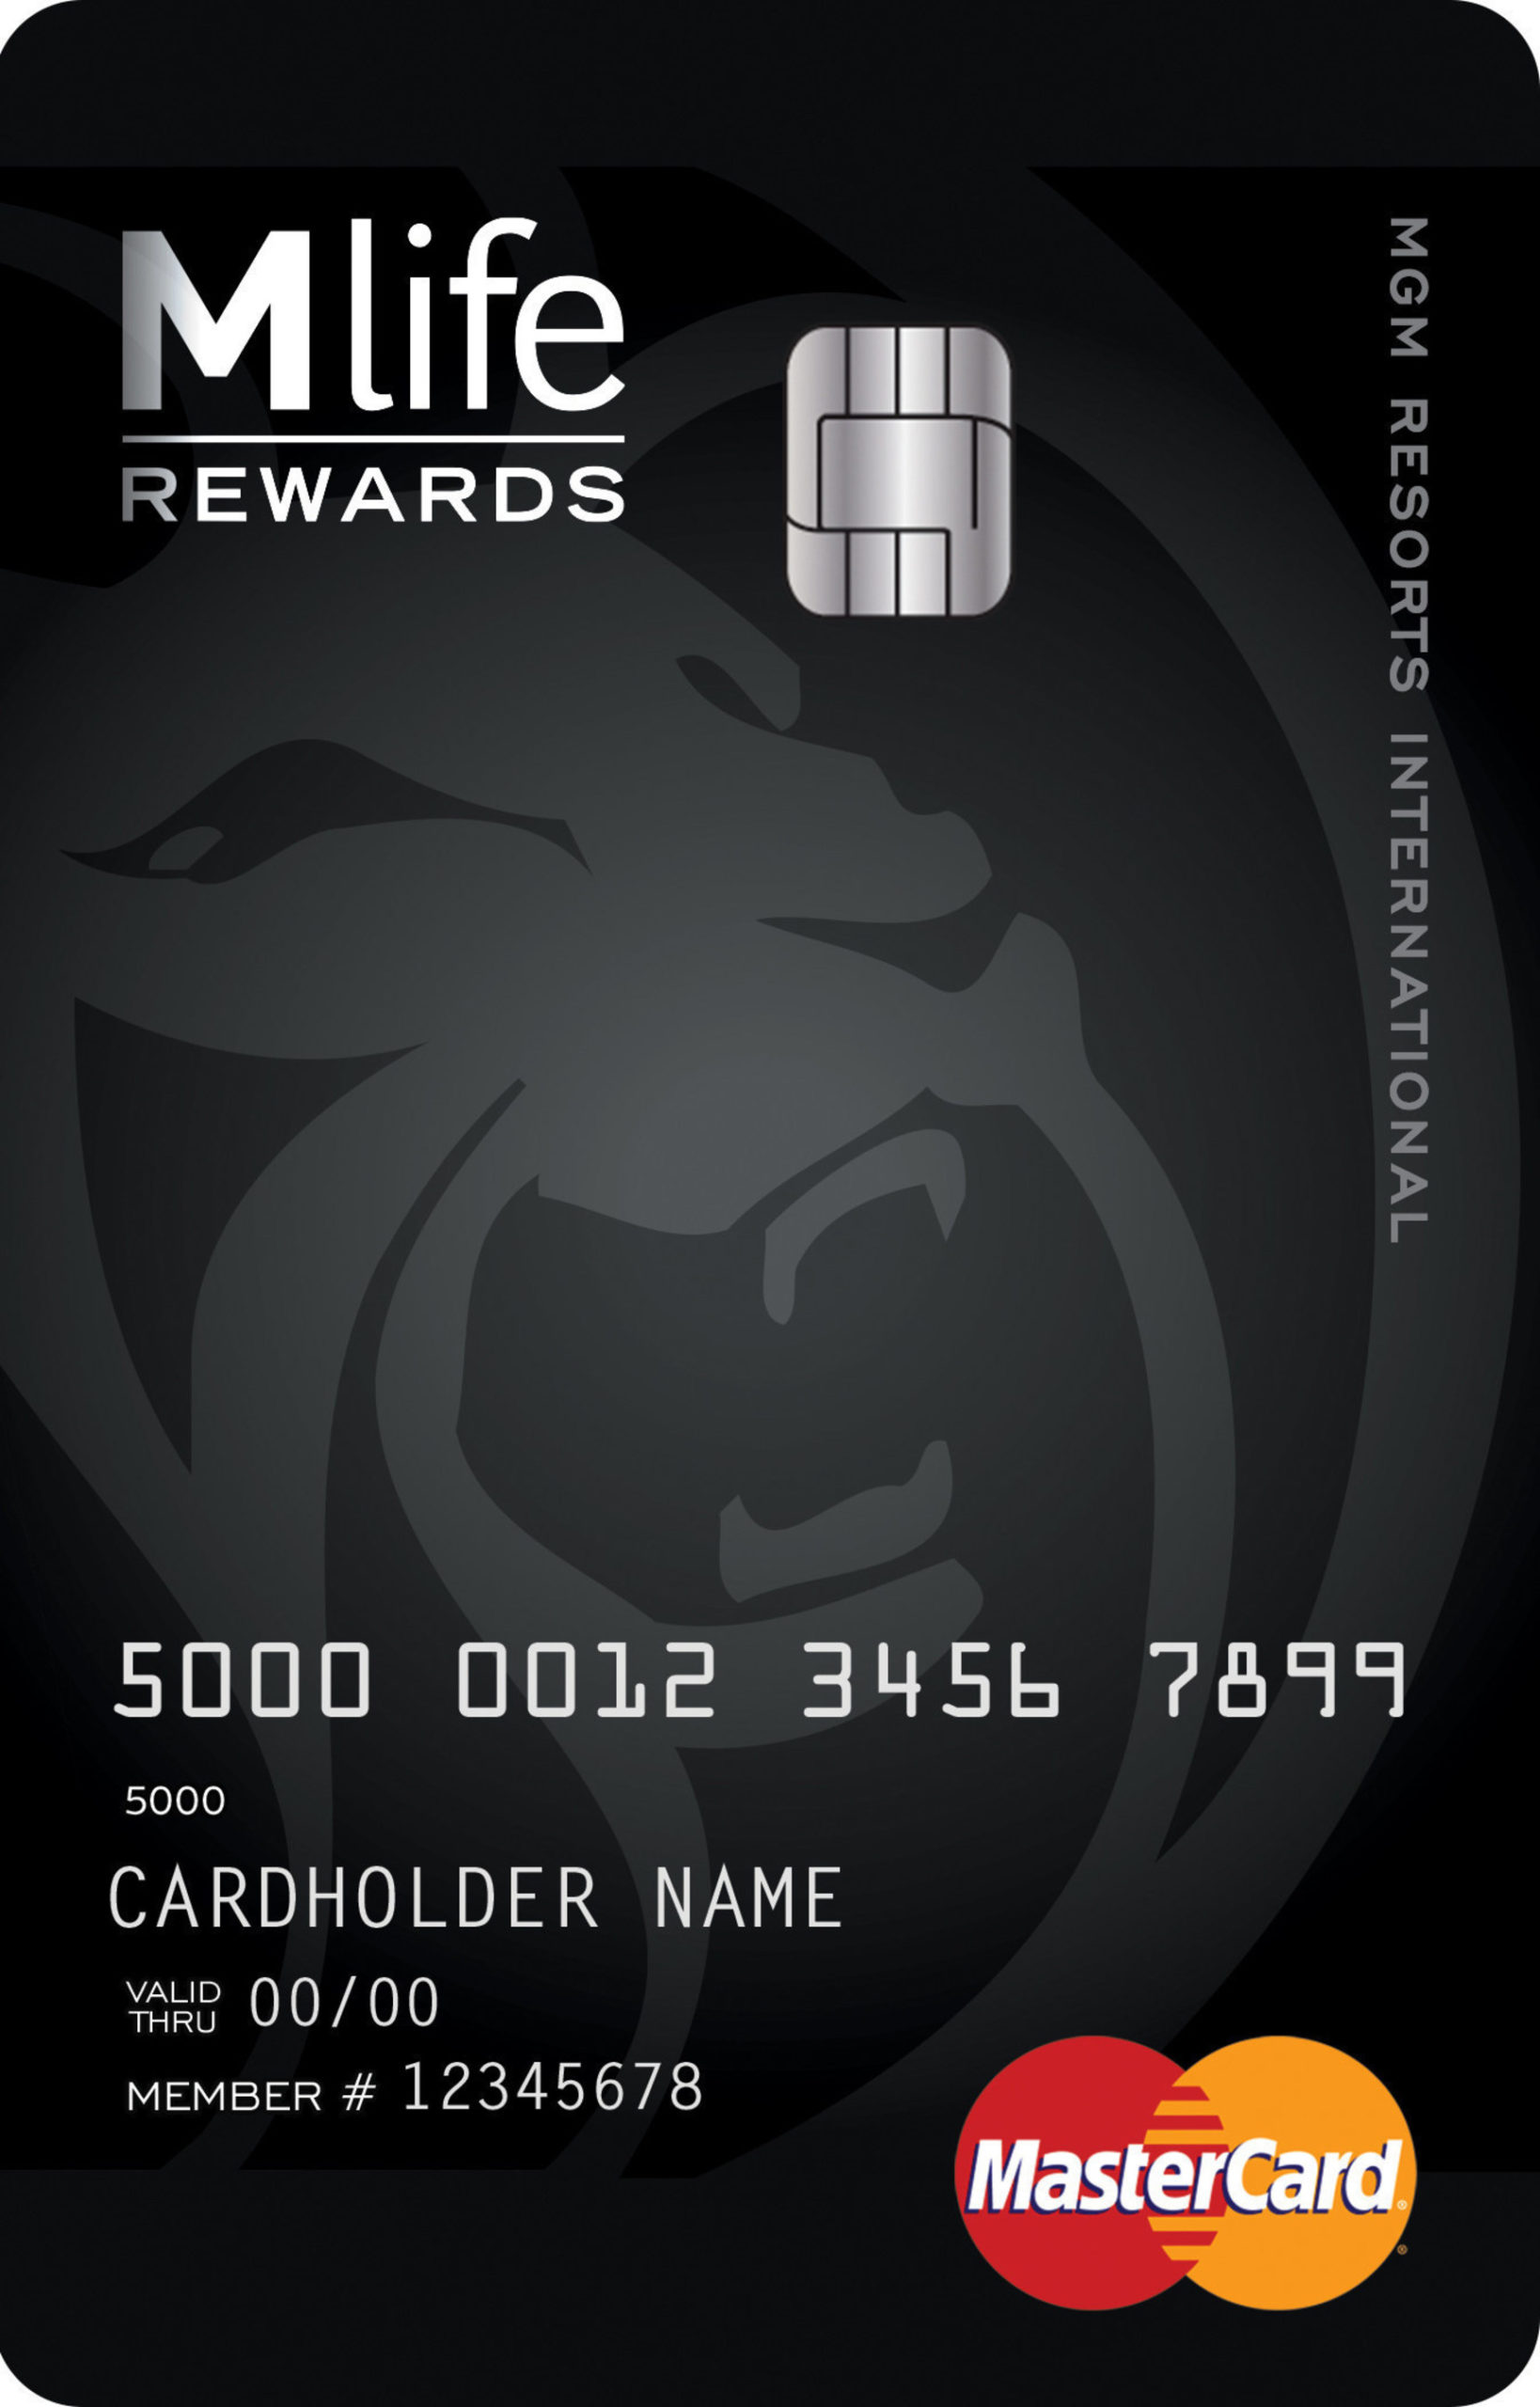 Mlife Credit Card